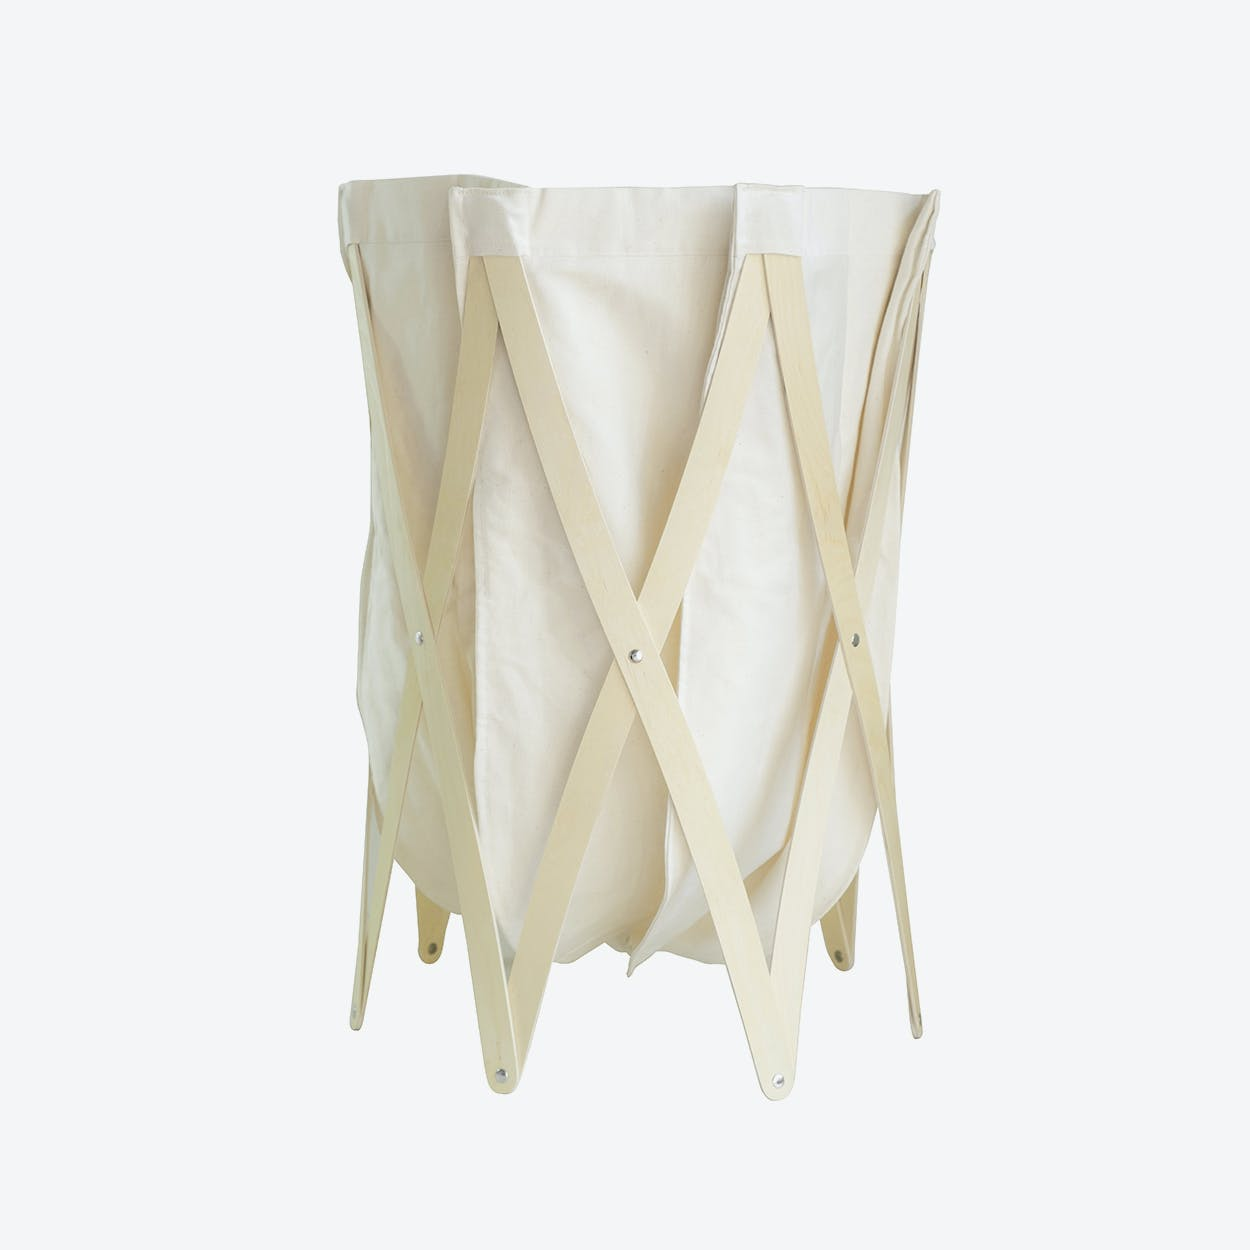 Marie Pi Laundry Basket  in Beige/Natural